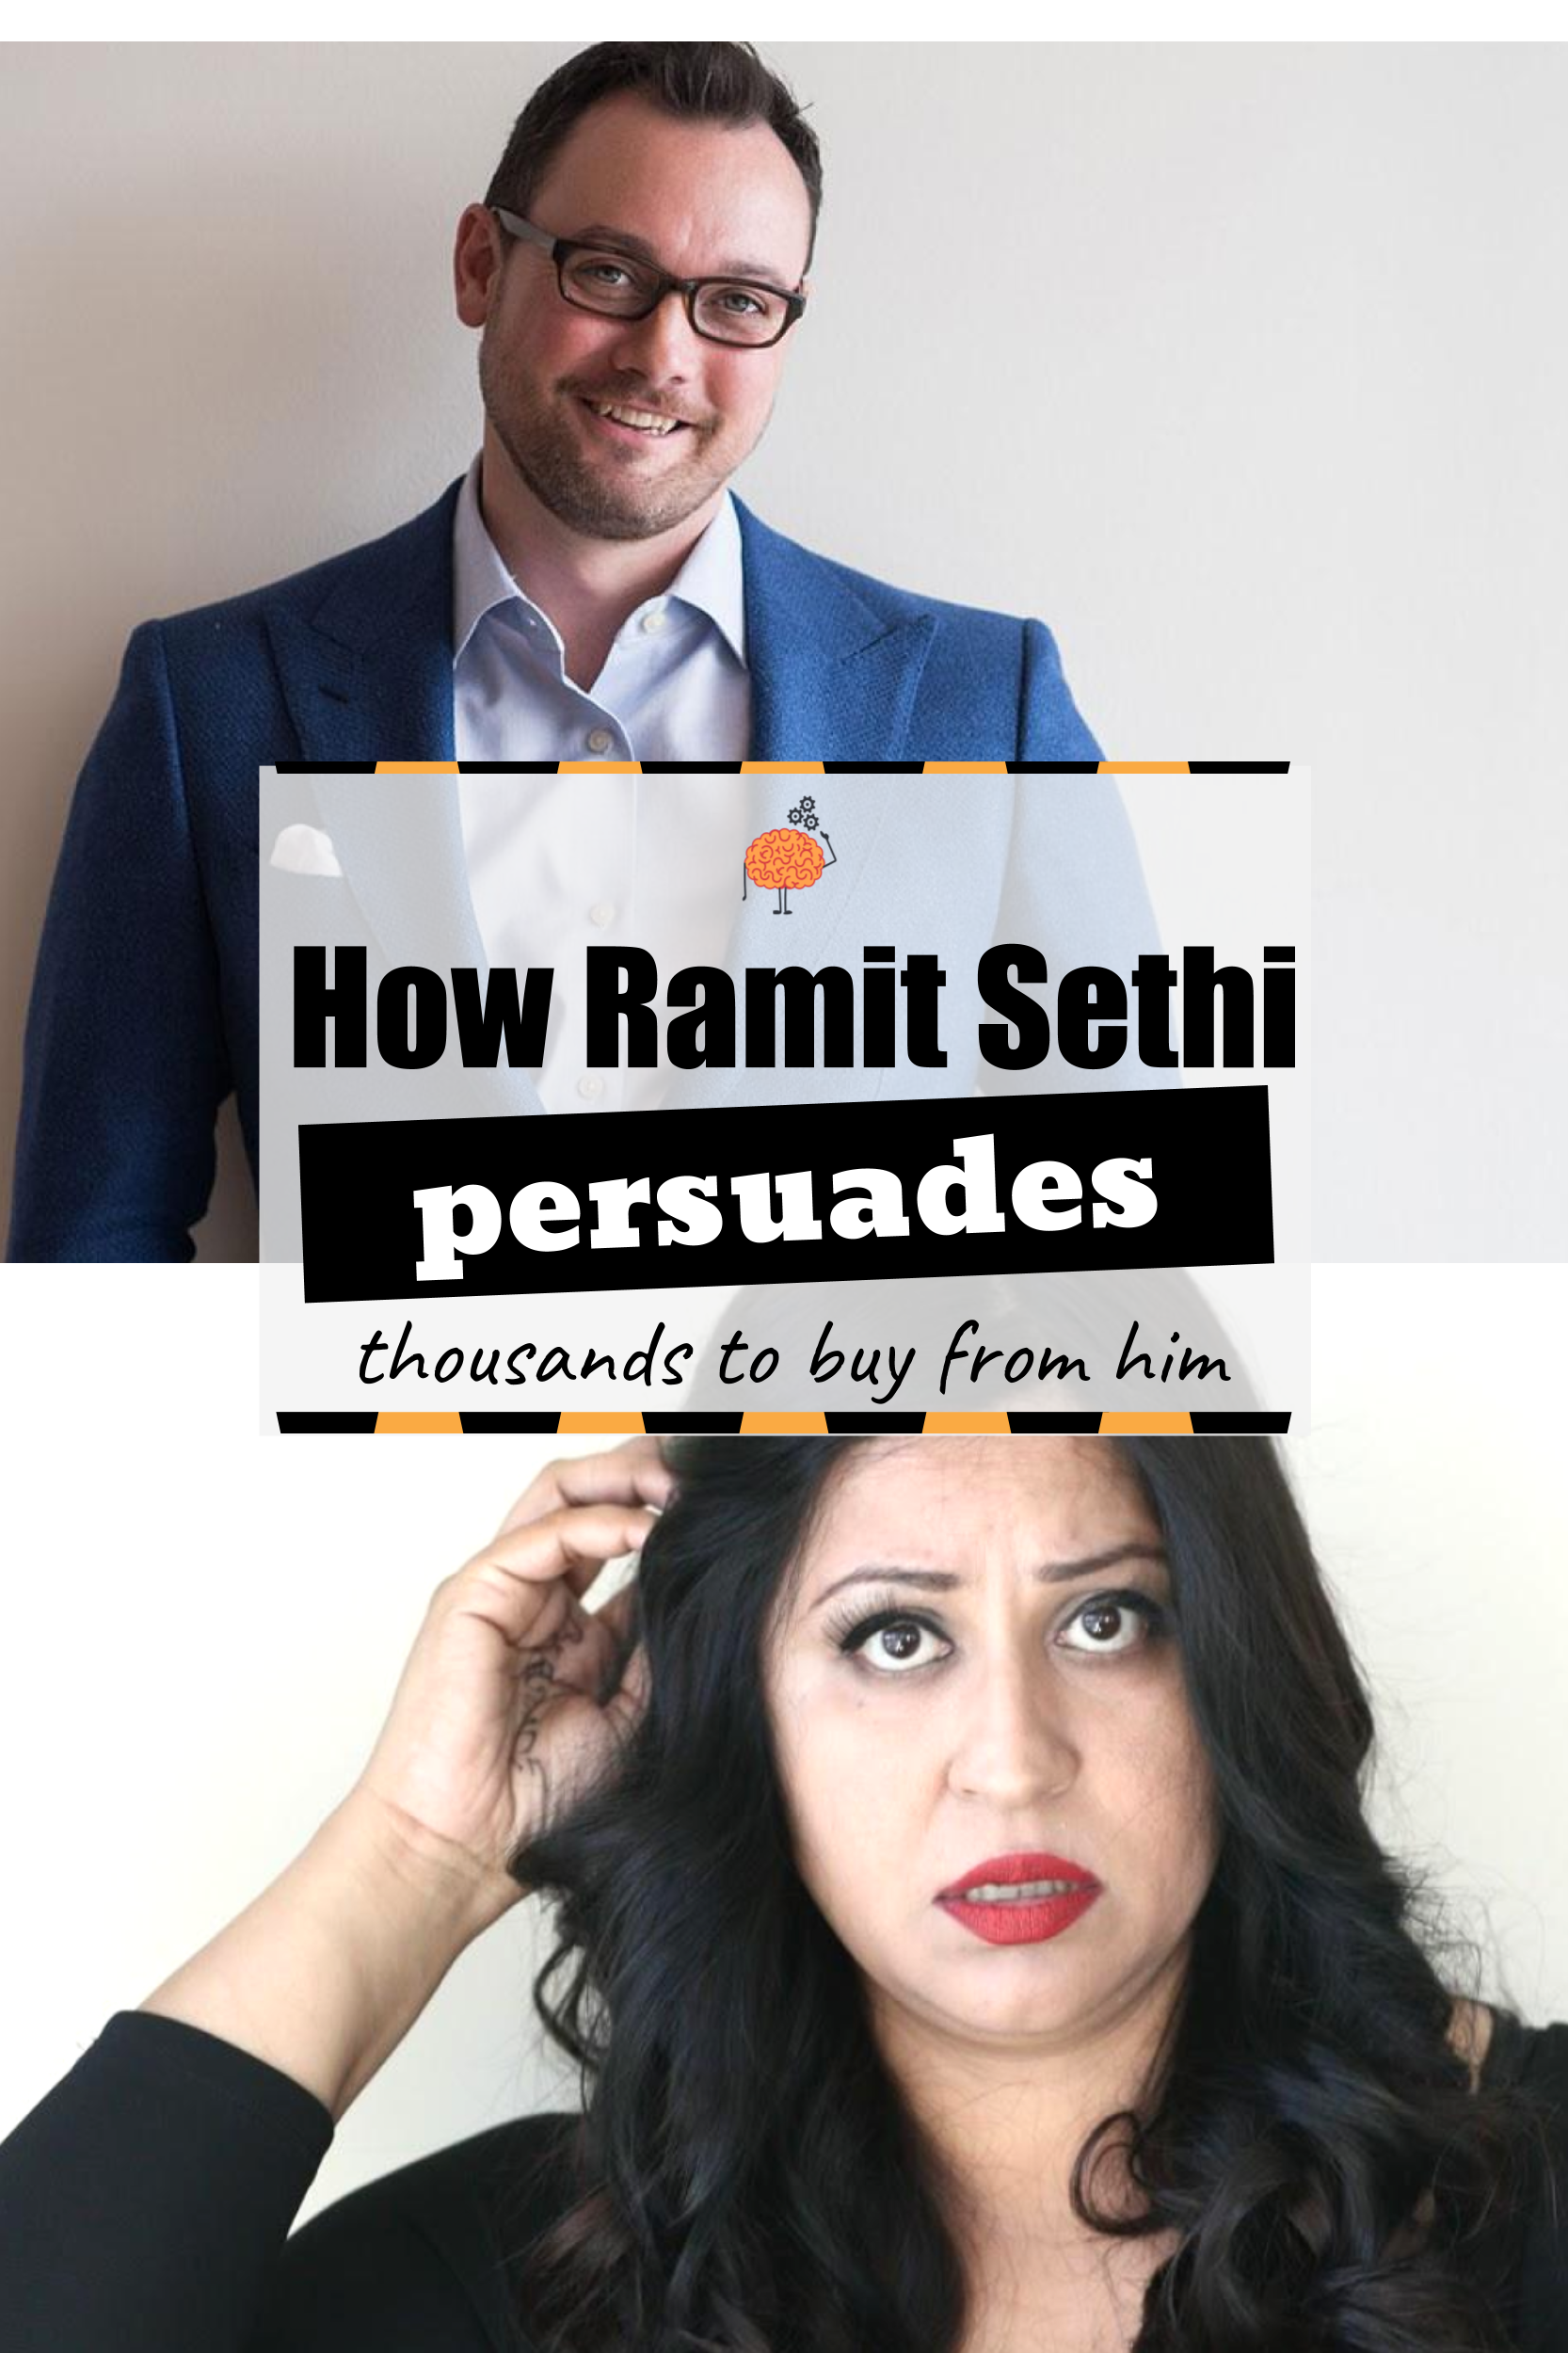 How they persuade: Sethi Ramit